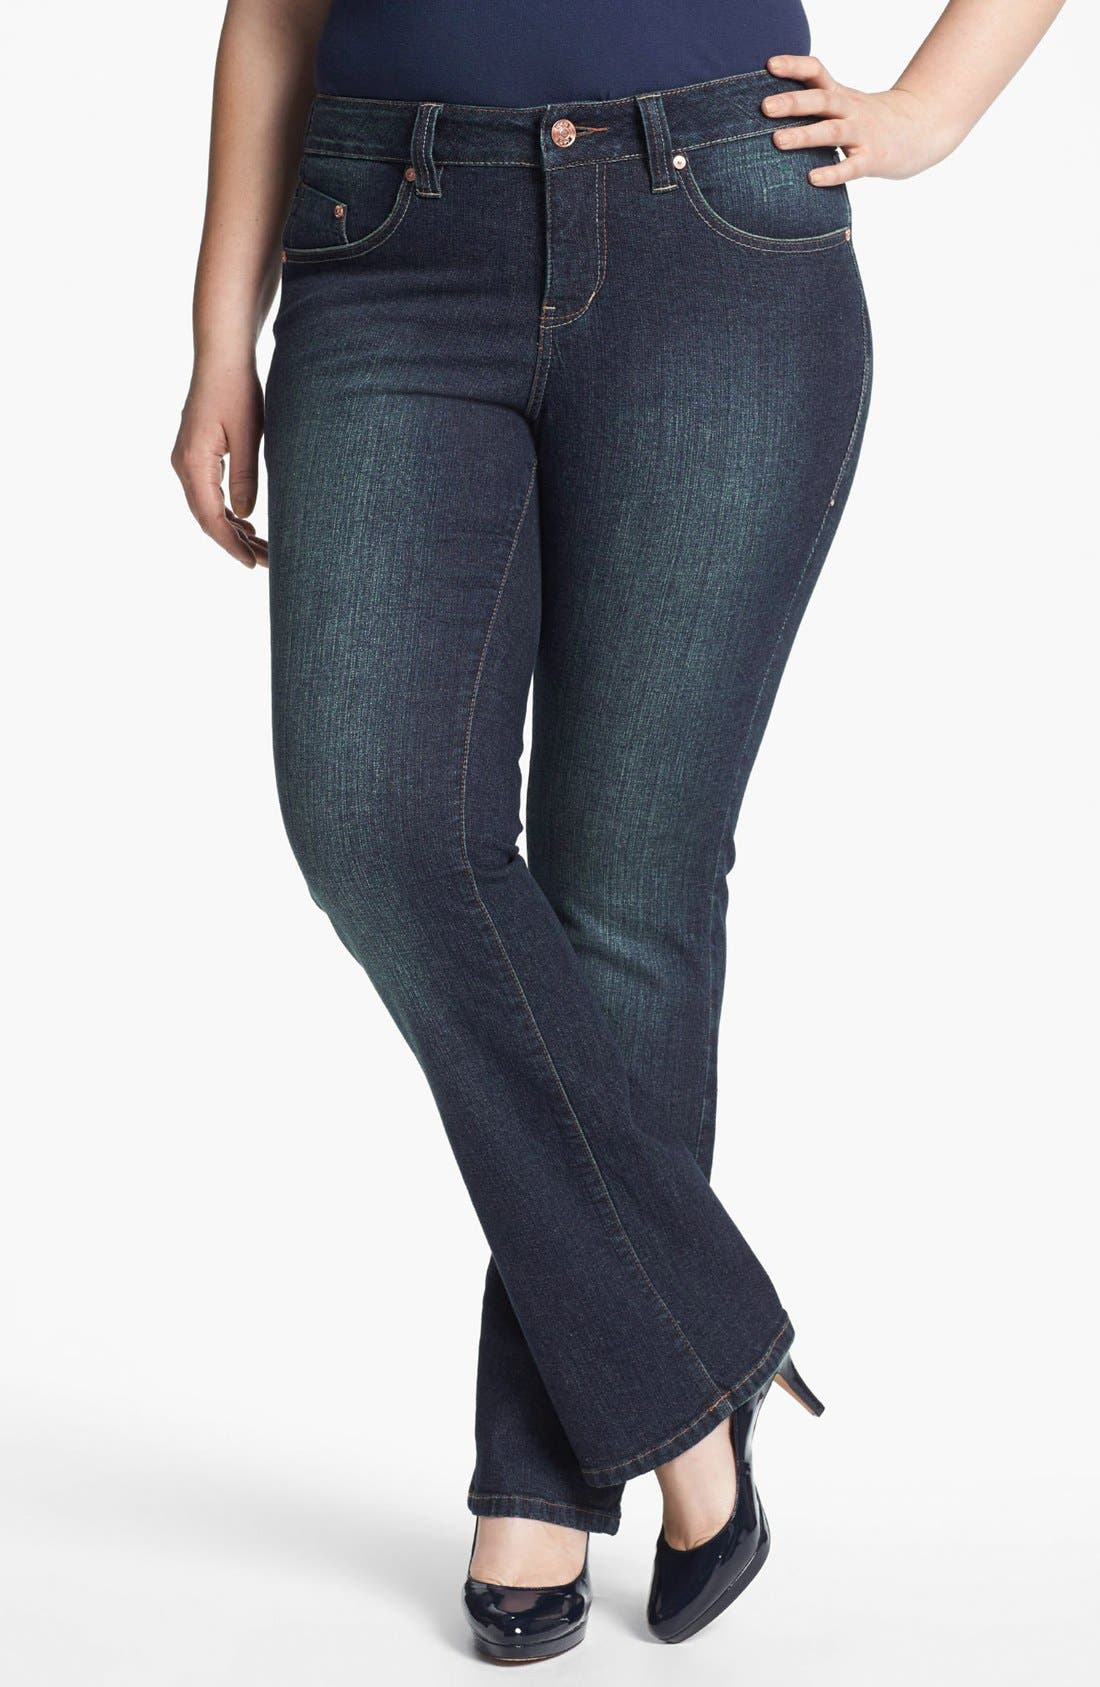 Alternate Image 1 Selected - Jag Jeans 'Foster' Bootcut Jeans (Plus Size)